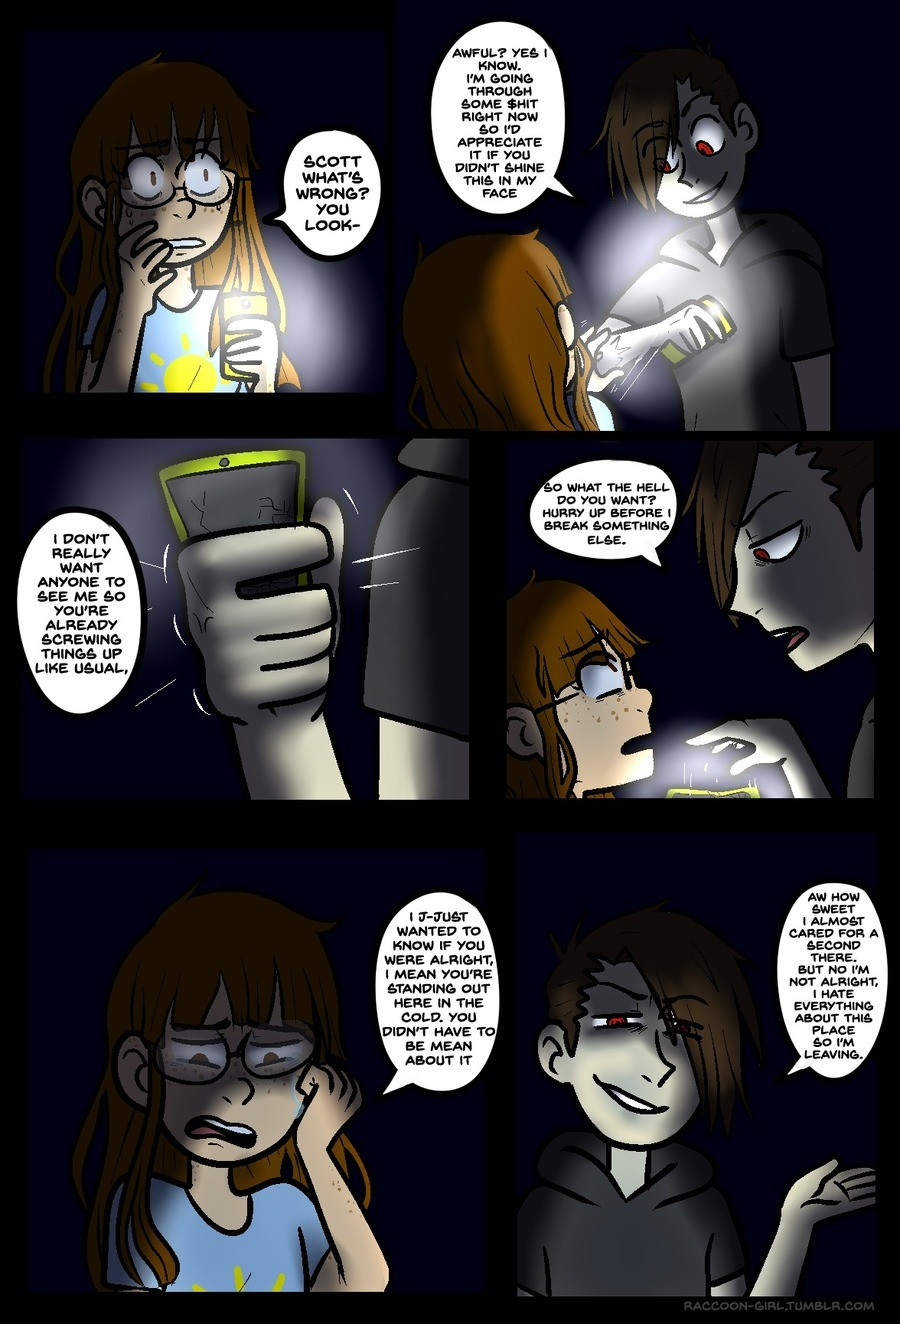 Raccoon Girl Pt5 (The Second Cliffhanger). join list: Rac00onGirl (146 subs)Mention Clicks: 750Msgs Sent: 1161Mention History. I DON' T REALLY WANT ANYONE TO SE